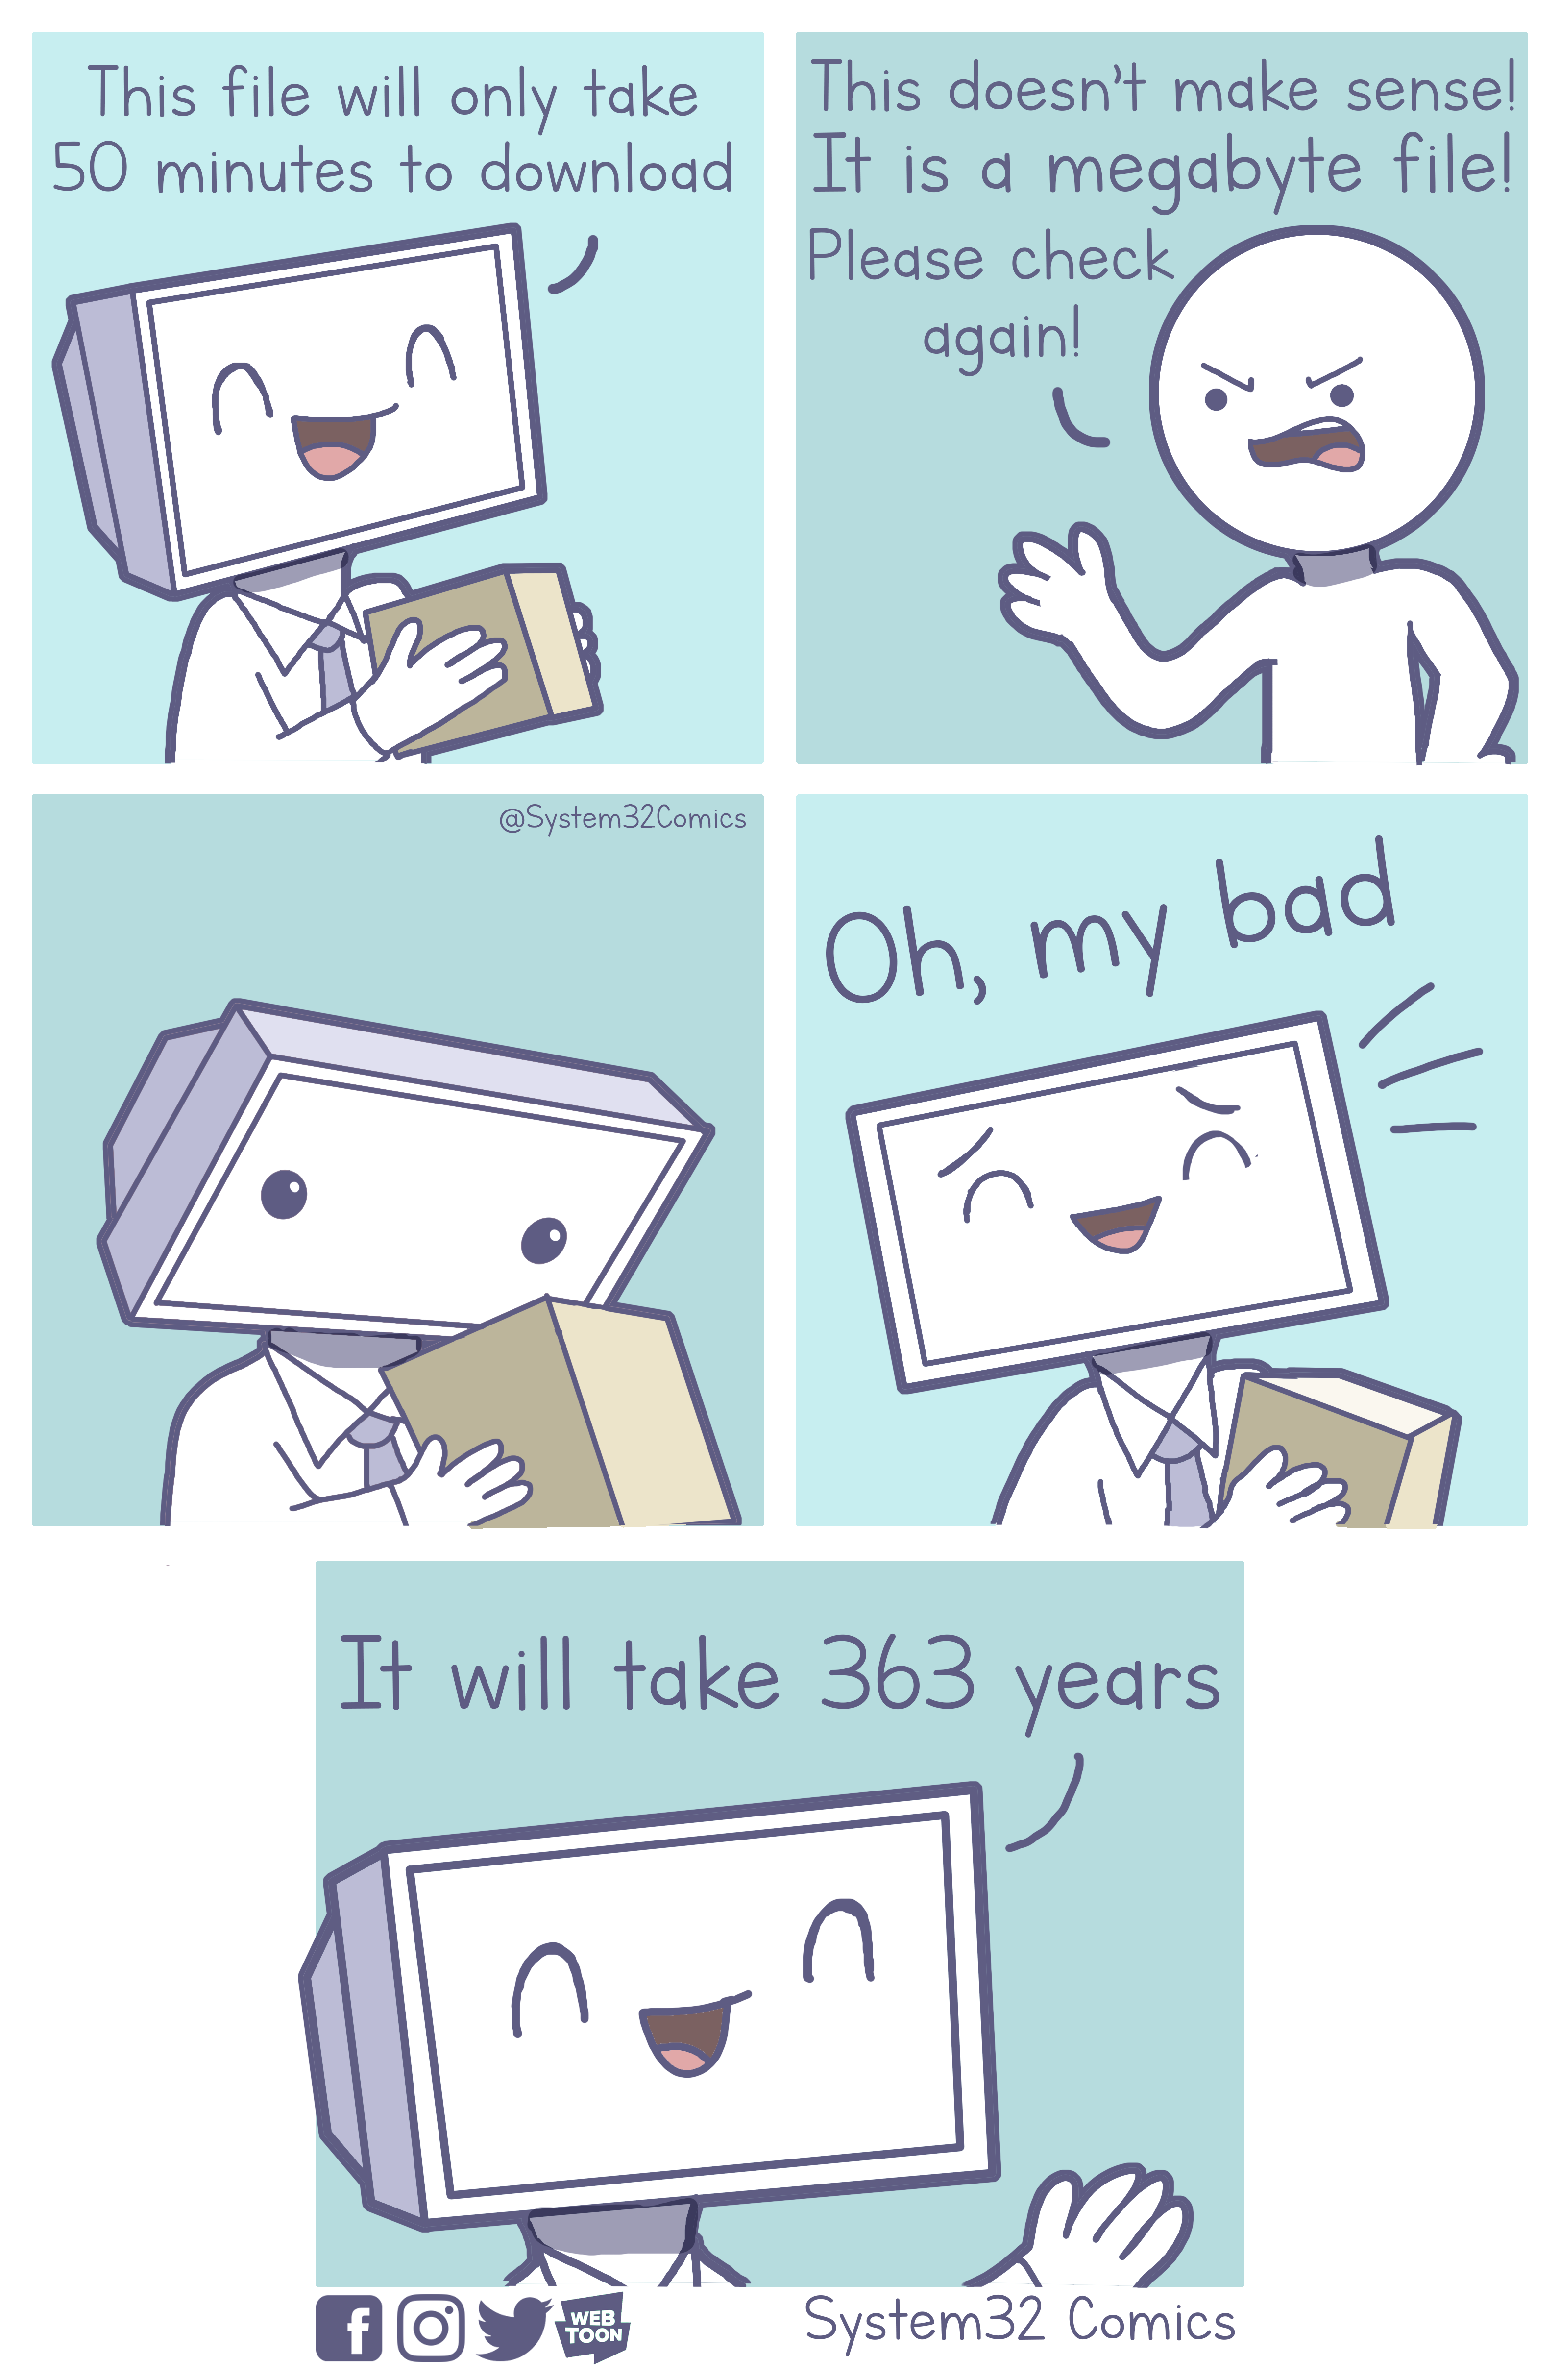 When My Computer Downloads a File [OC] Funny illustration